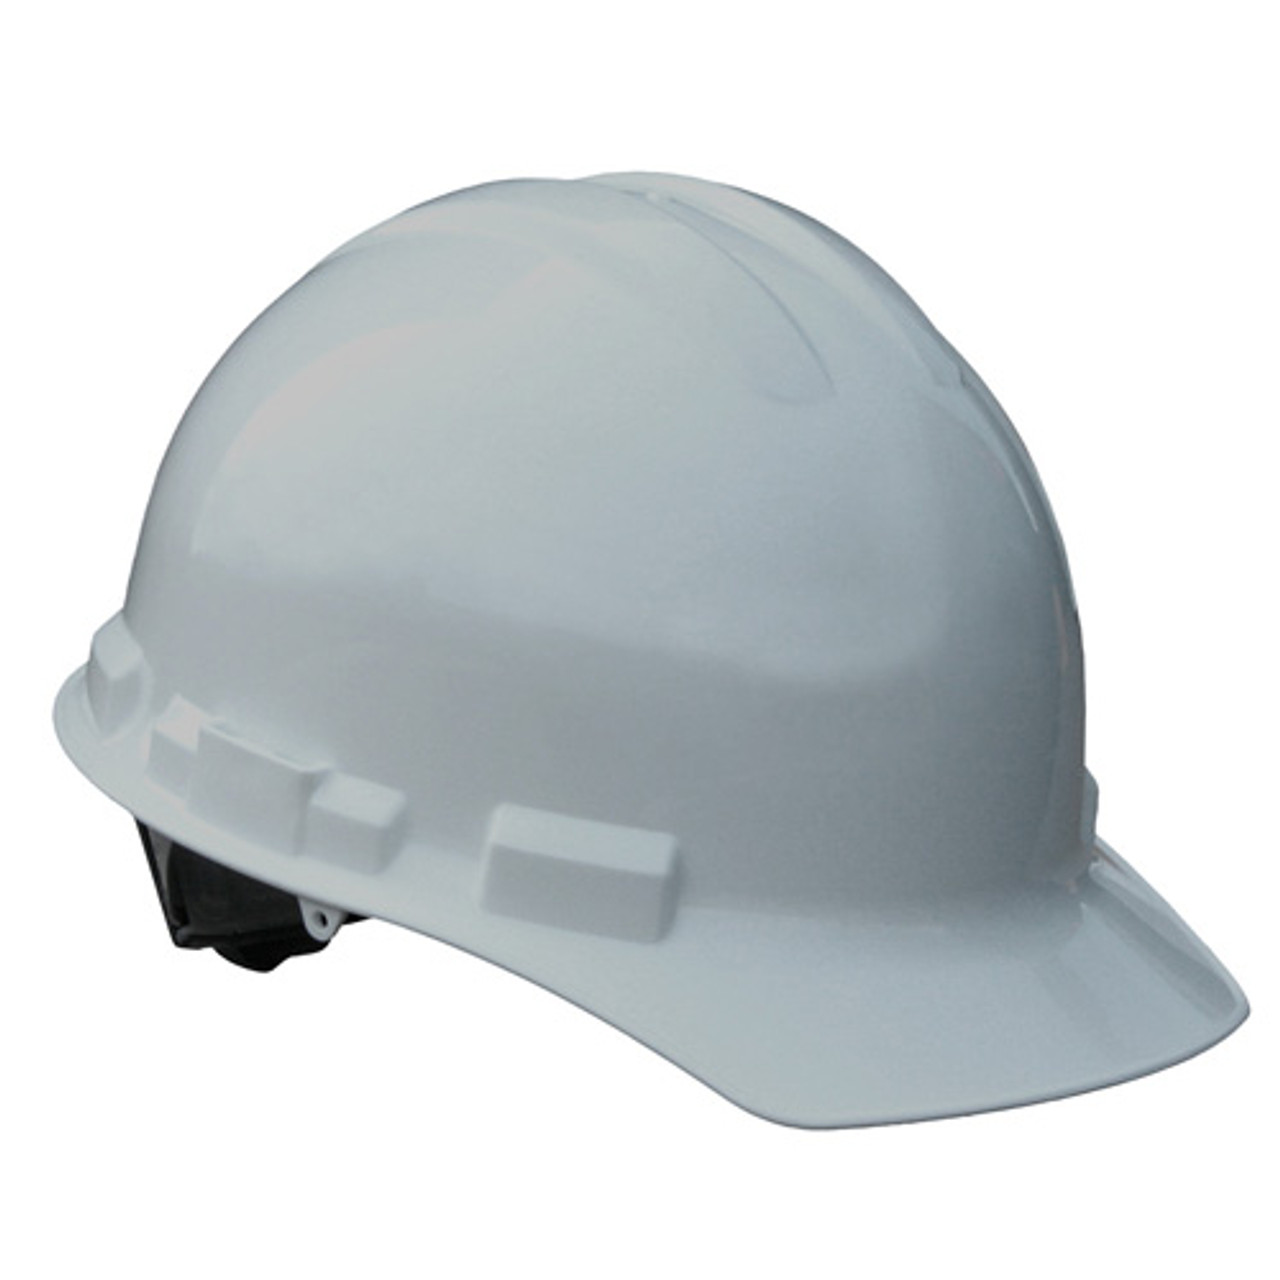 Grey Radians Hard Hat with Ratchet Suspension Made in The USA